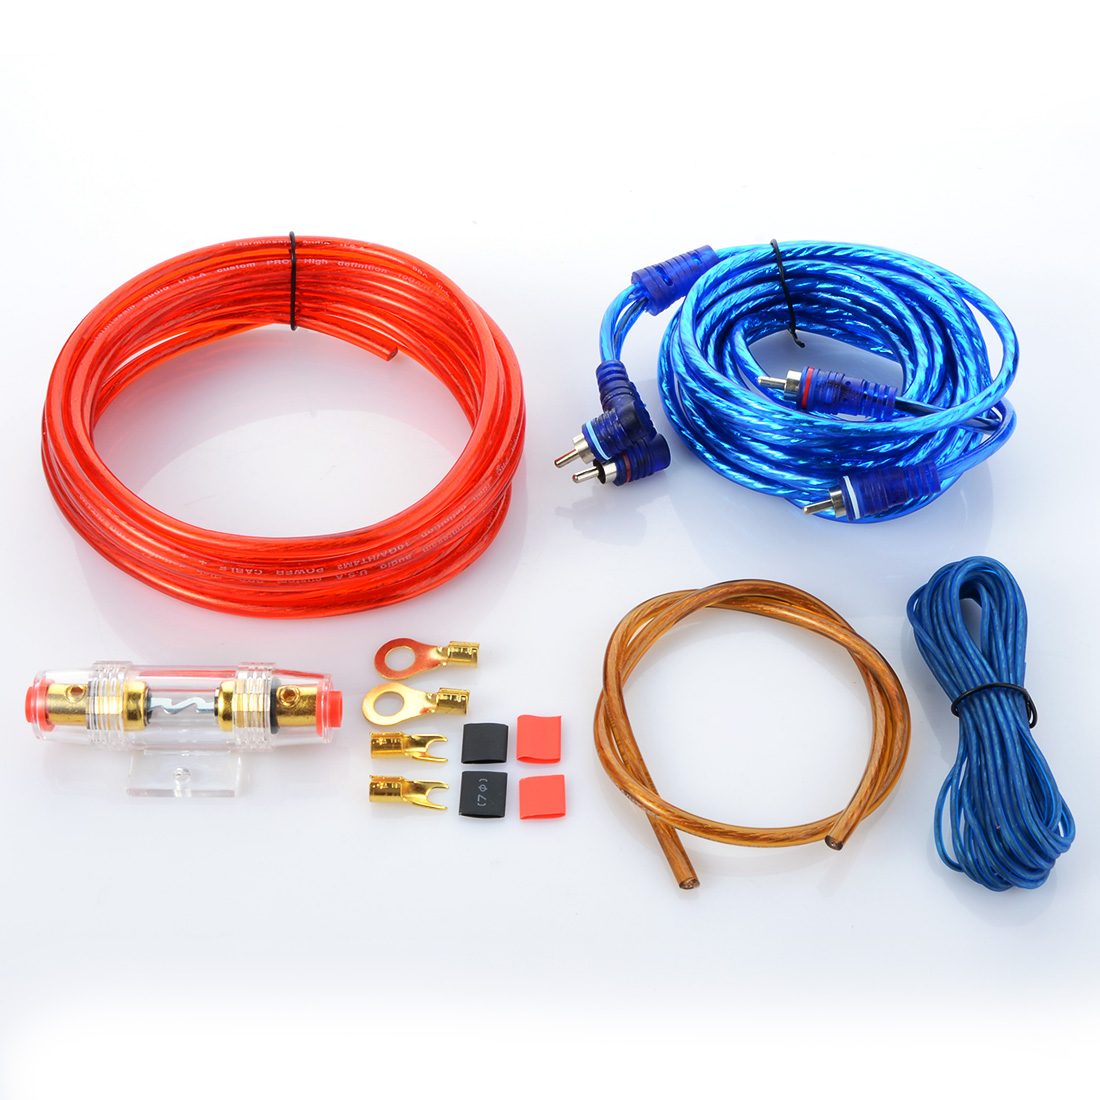 Audio Wiring Kit Library Online Get Cheap Amp Aliexpresscom Alibaba Group Car Wire Rca Amplifier Subwoofer Cable Speaker Kit10ga In Cables